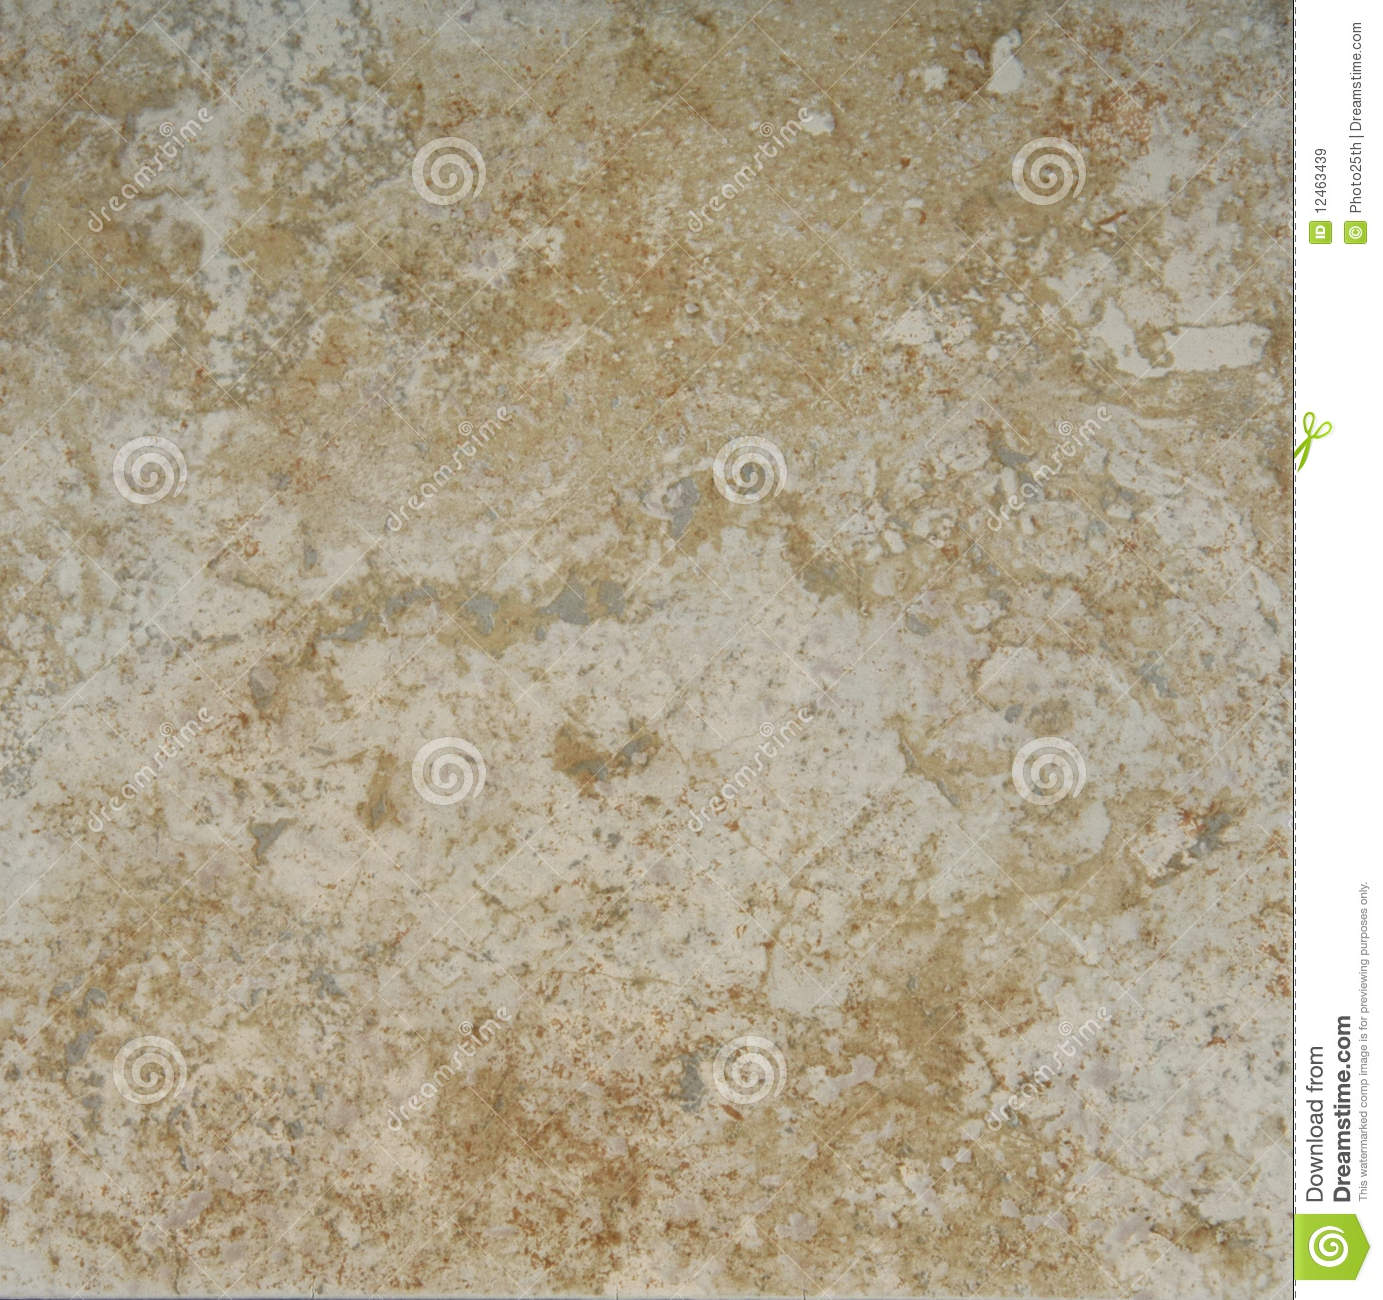 Modern kitchen wallpaper texture - Ceramic Texture Royalty Free Stock Images Image 12463439